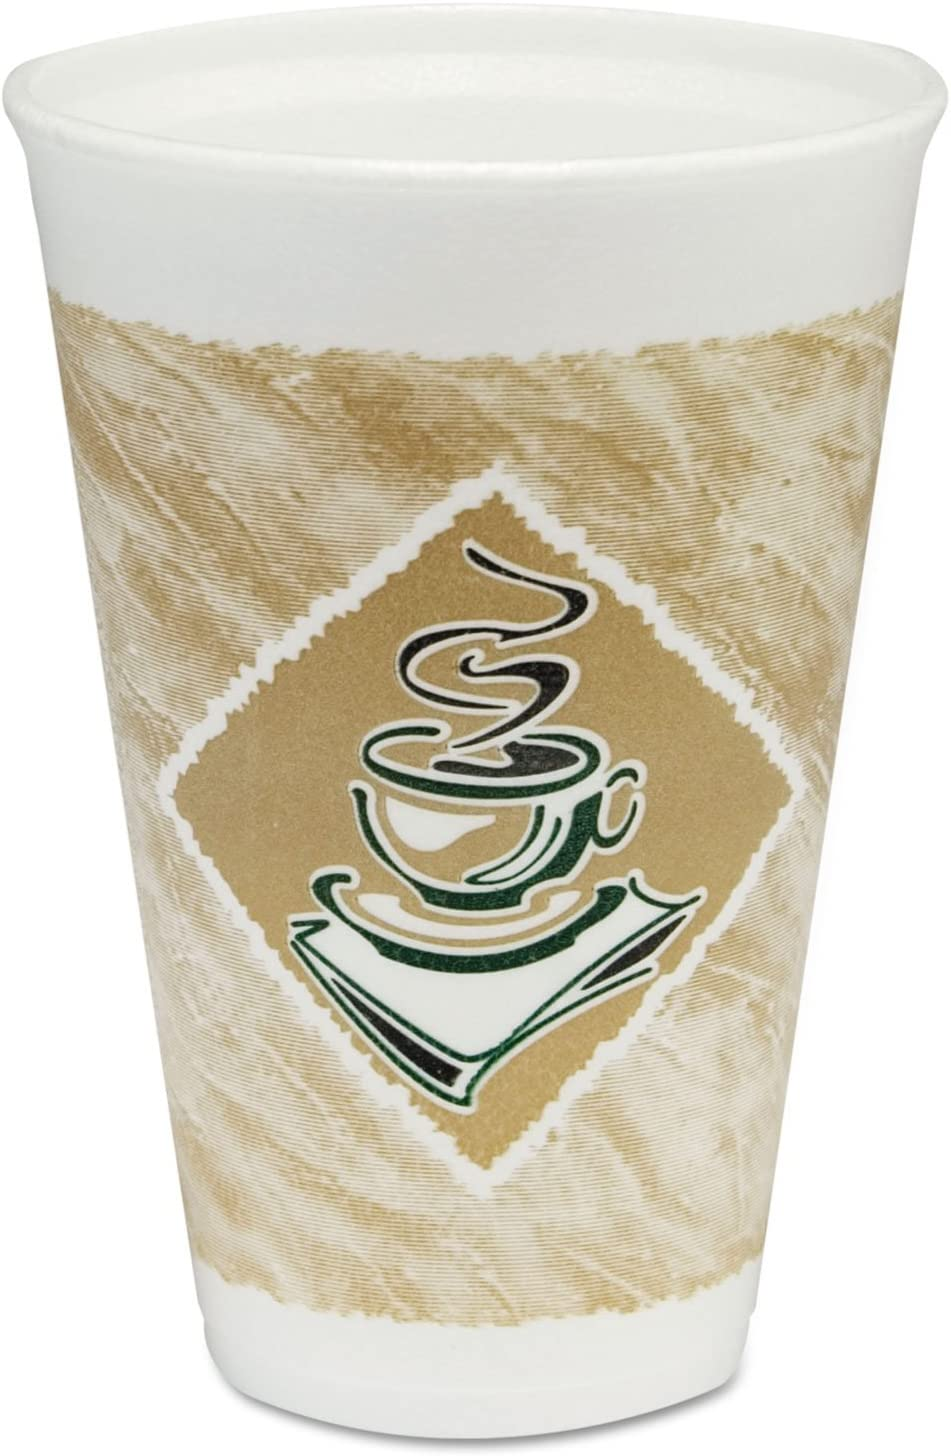 Free shipping anywhere in the nation Bargain sale New - Foam Hot Cold Cups 16 Brown oz Green w 100 White amp;amp;